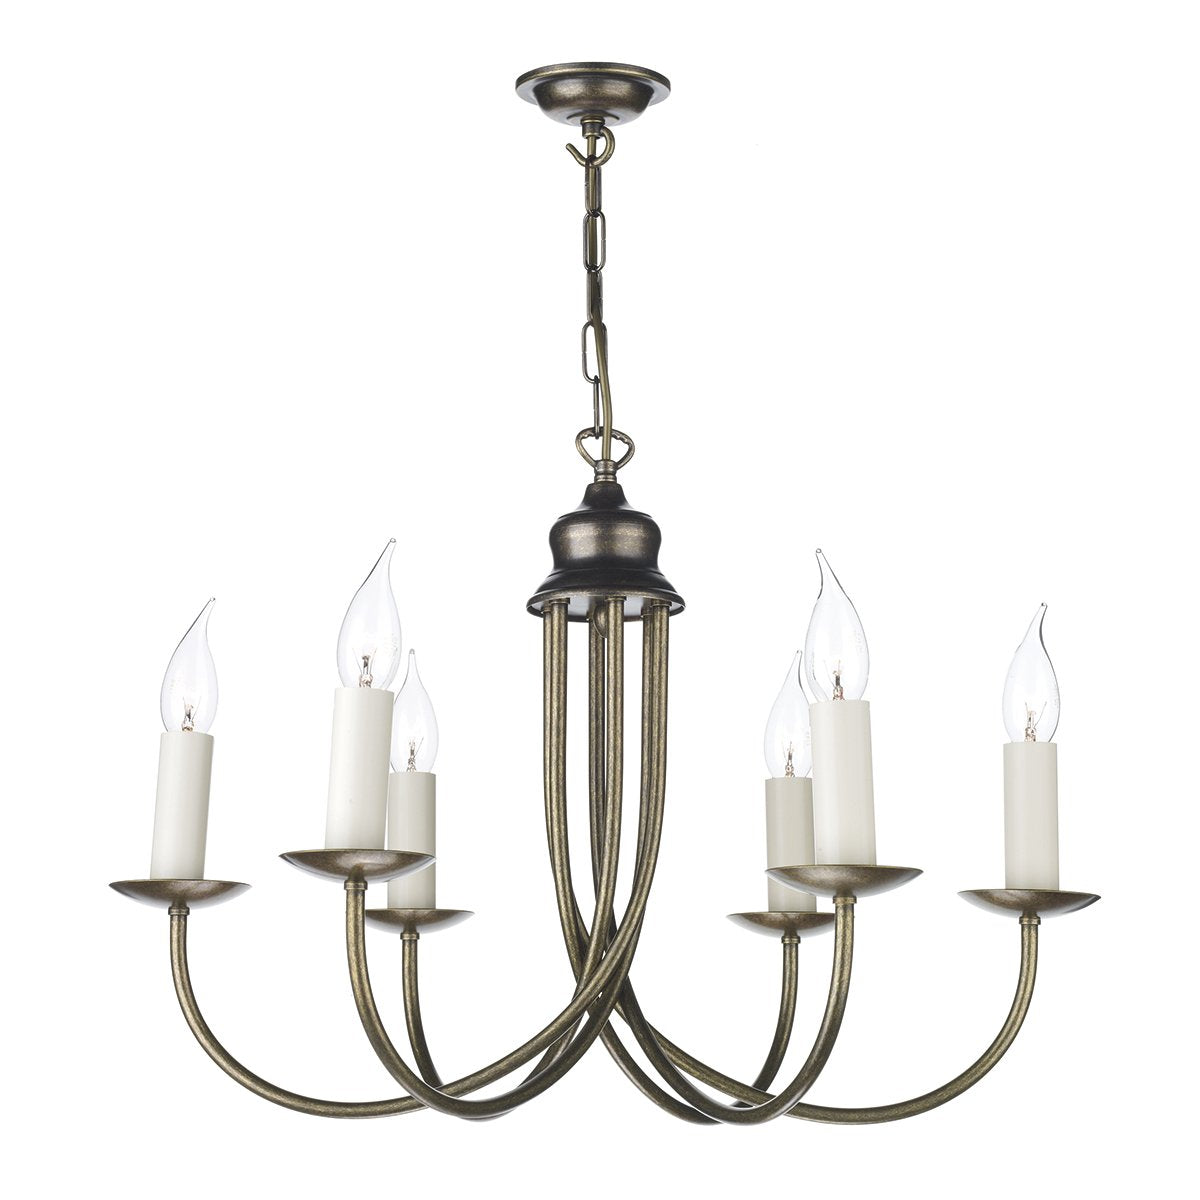 Harlington 6 Arm Wall Light In Aged Brass - ID 3527